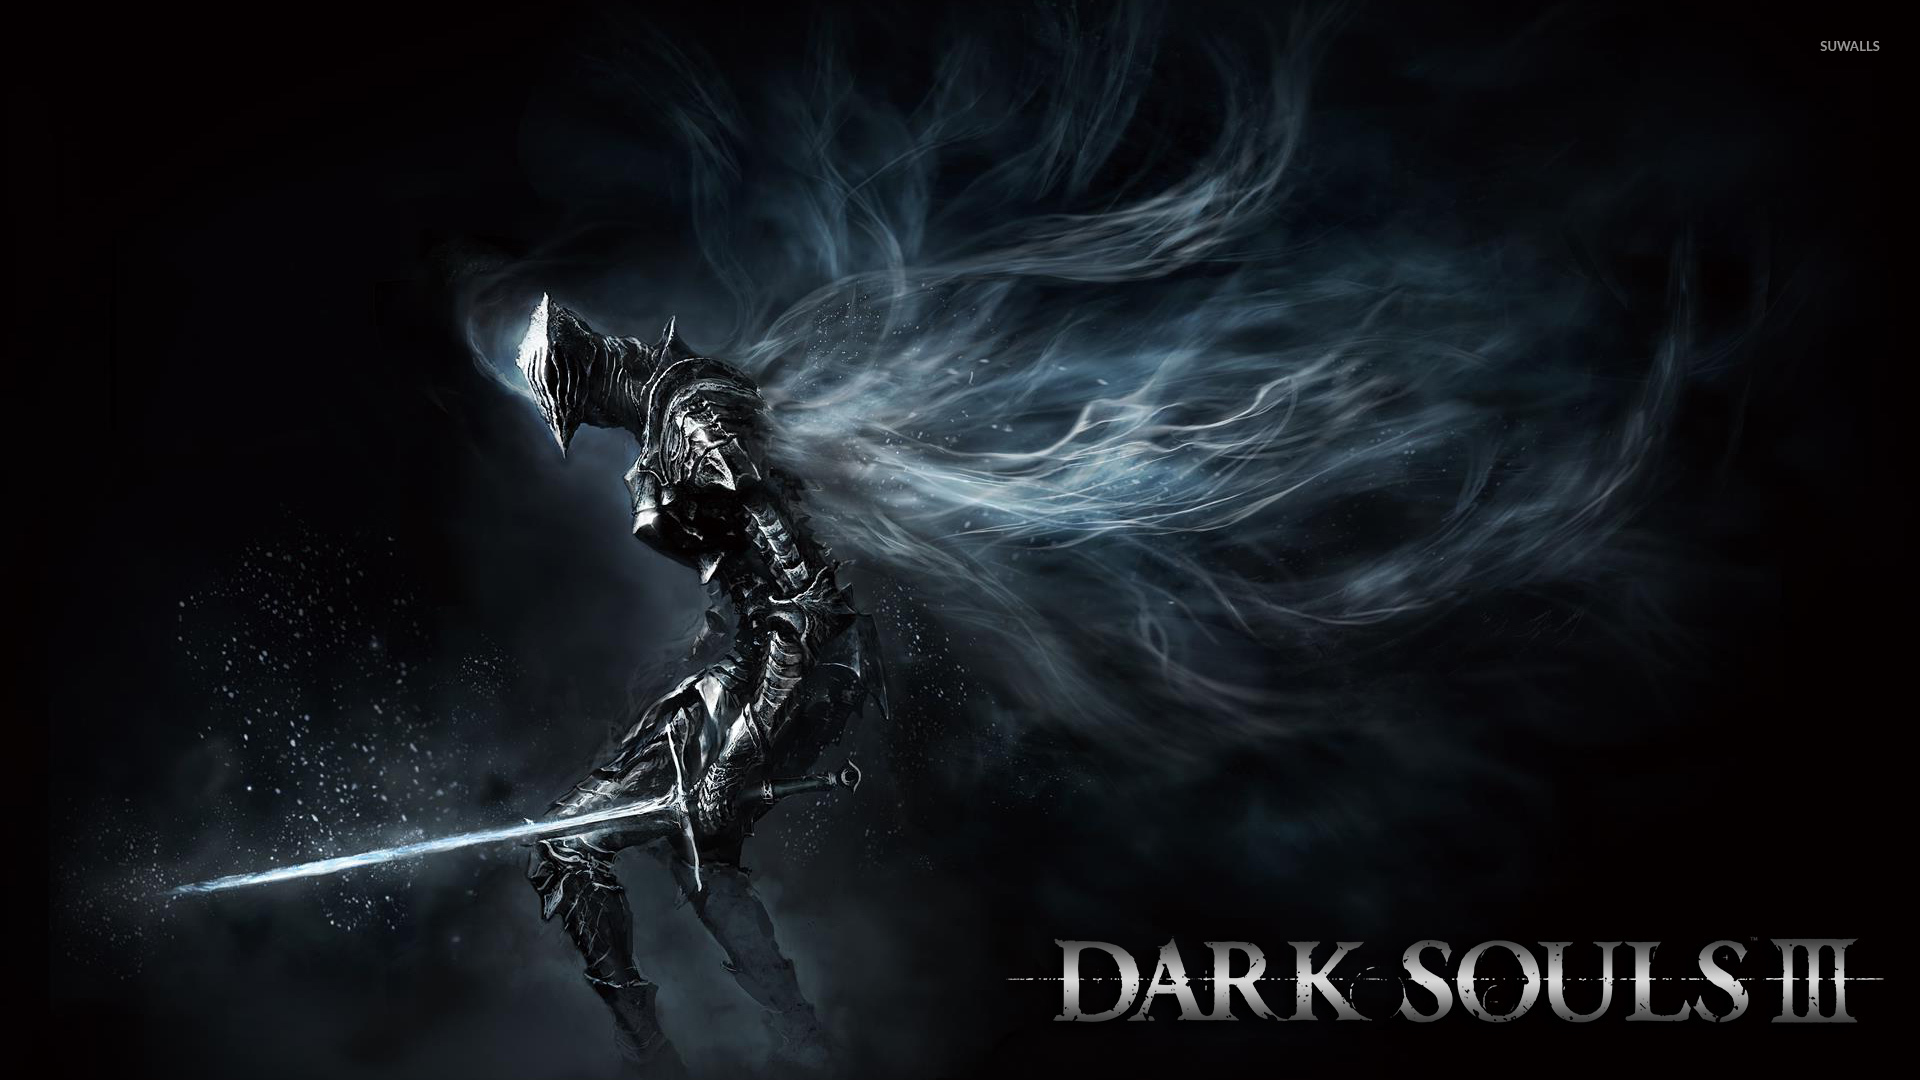 Smoking Knight In Dark Souls Iii Wallpaper Game Wallpapers 53600